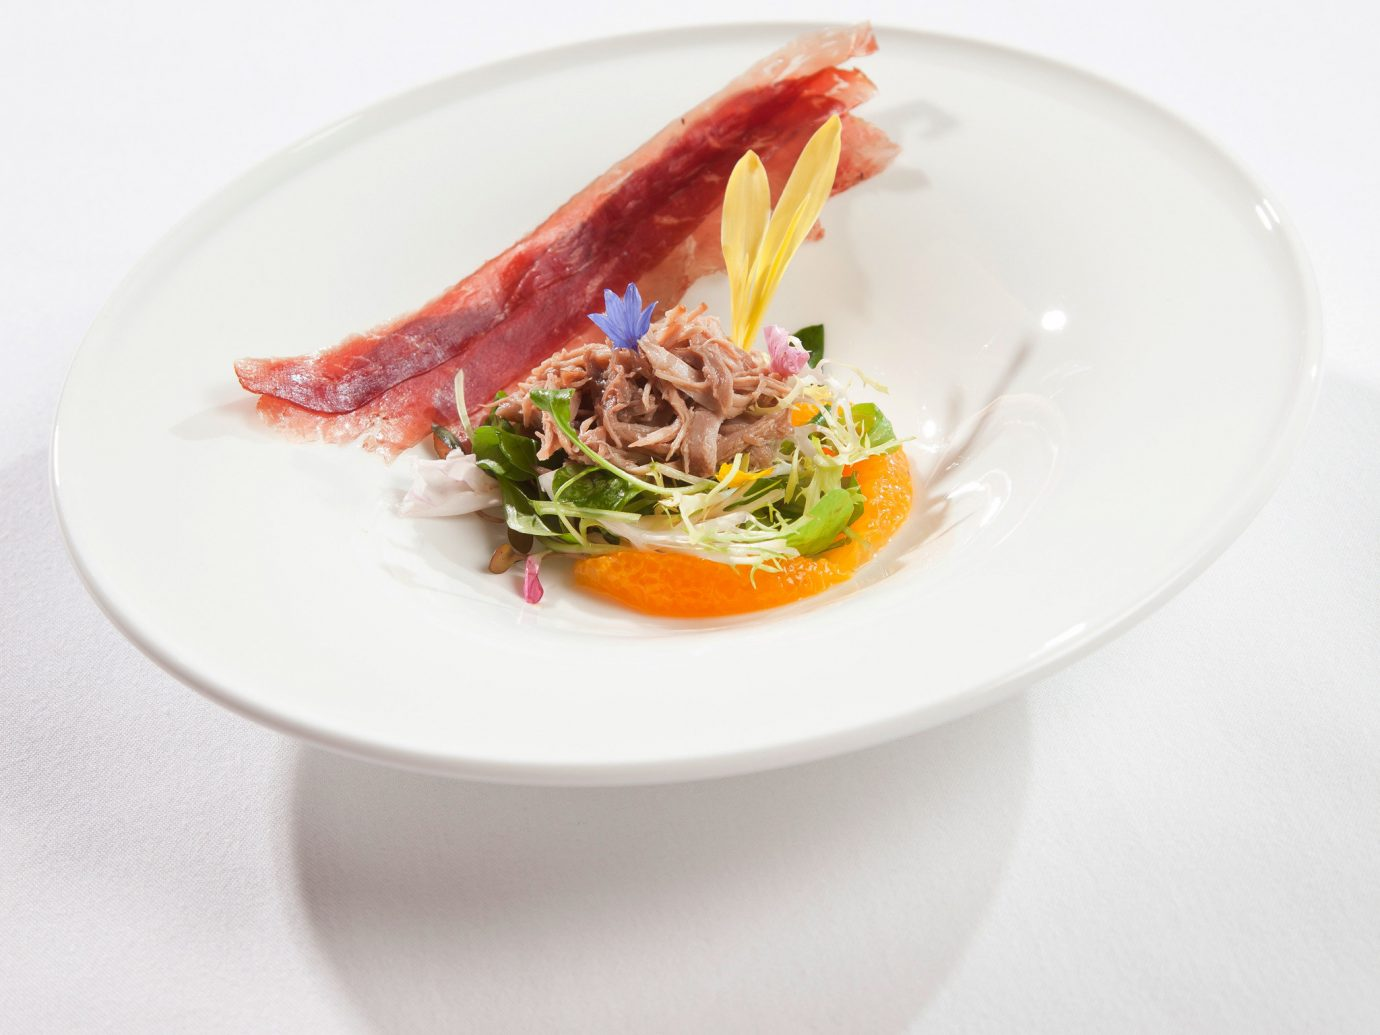 Hotels plate food table dish white meal produce cuisine Seafood fish served vegetable